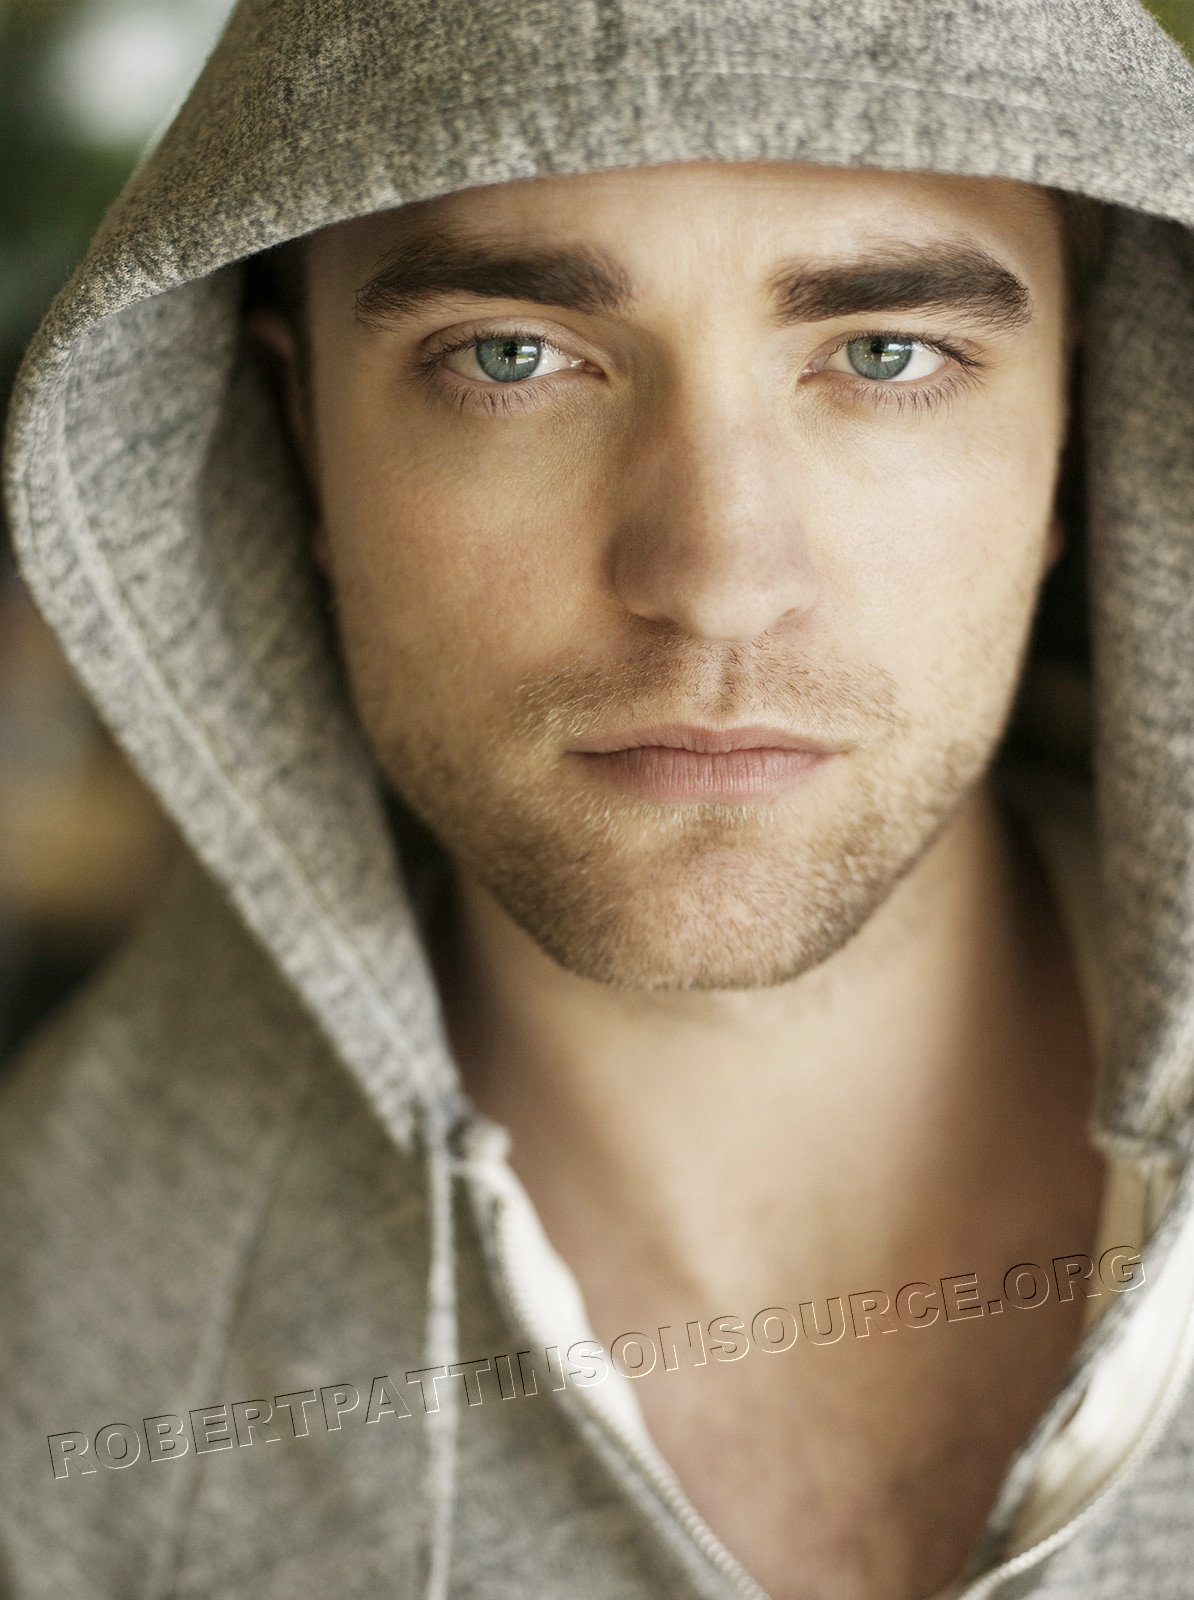 http://3.bp.blogspot.com/_-OpzhtqyVf4/TCI_KkYY6kI/AAAAAAAAIJw/Yu_erBrsvLE/s1600/tv-week-photoshoot-robert-pattinson-hoodie-green-eyes.jpg